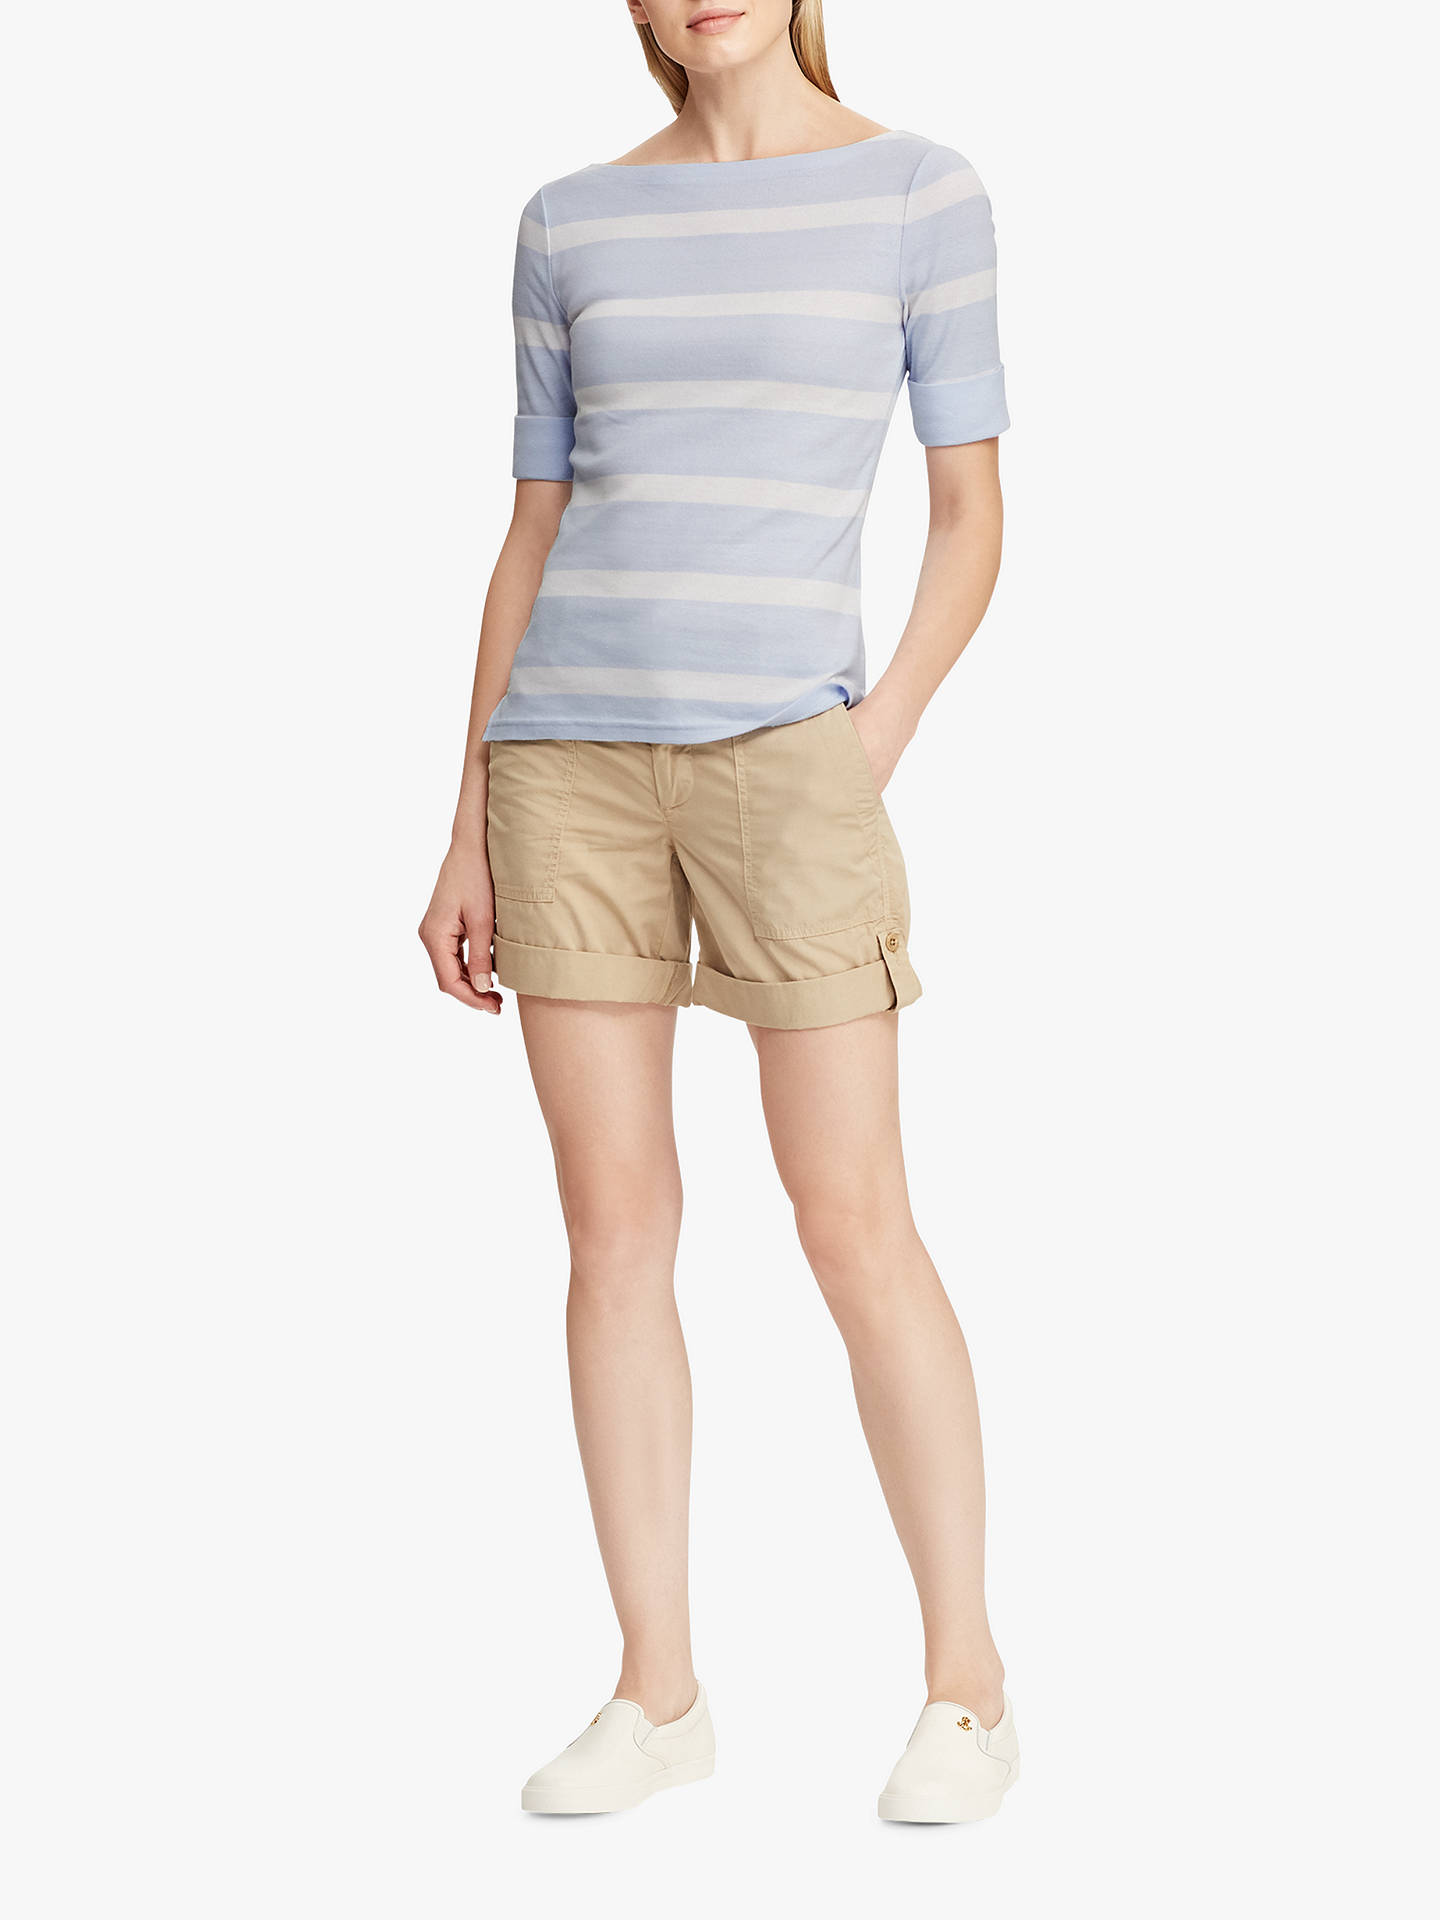 BuyLauren Ralph Lauren Judy Stripe Top, Whisper Blue/White, L Online at johnlewis.com